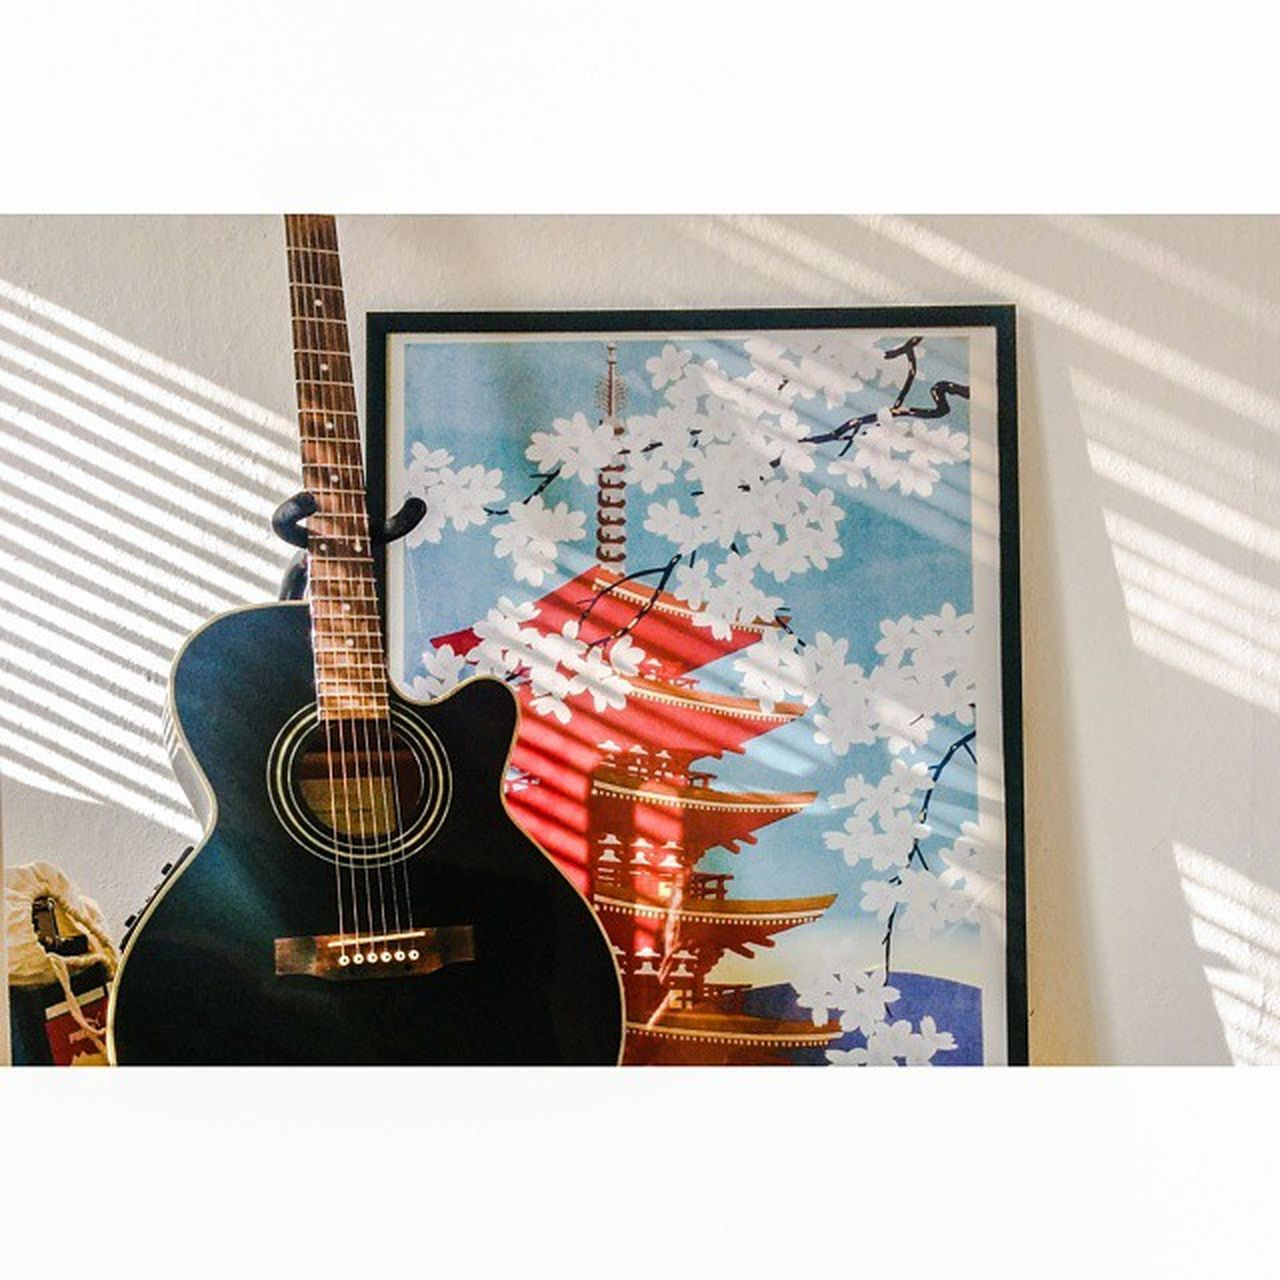 guitar, music, arts culture and entertainment, musical instrument, acoustic guitar, musical instrument string, no people, indoors, electric guitar, fretboard, day